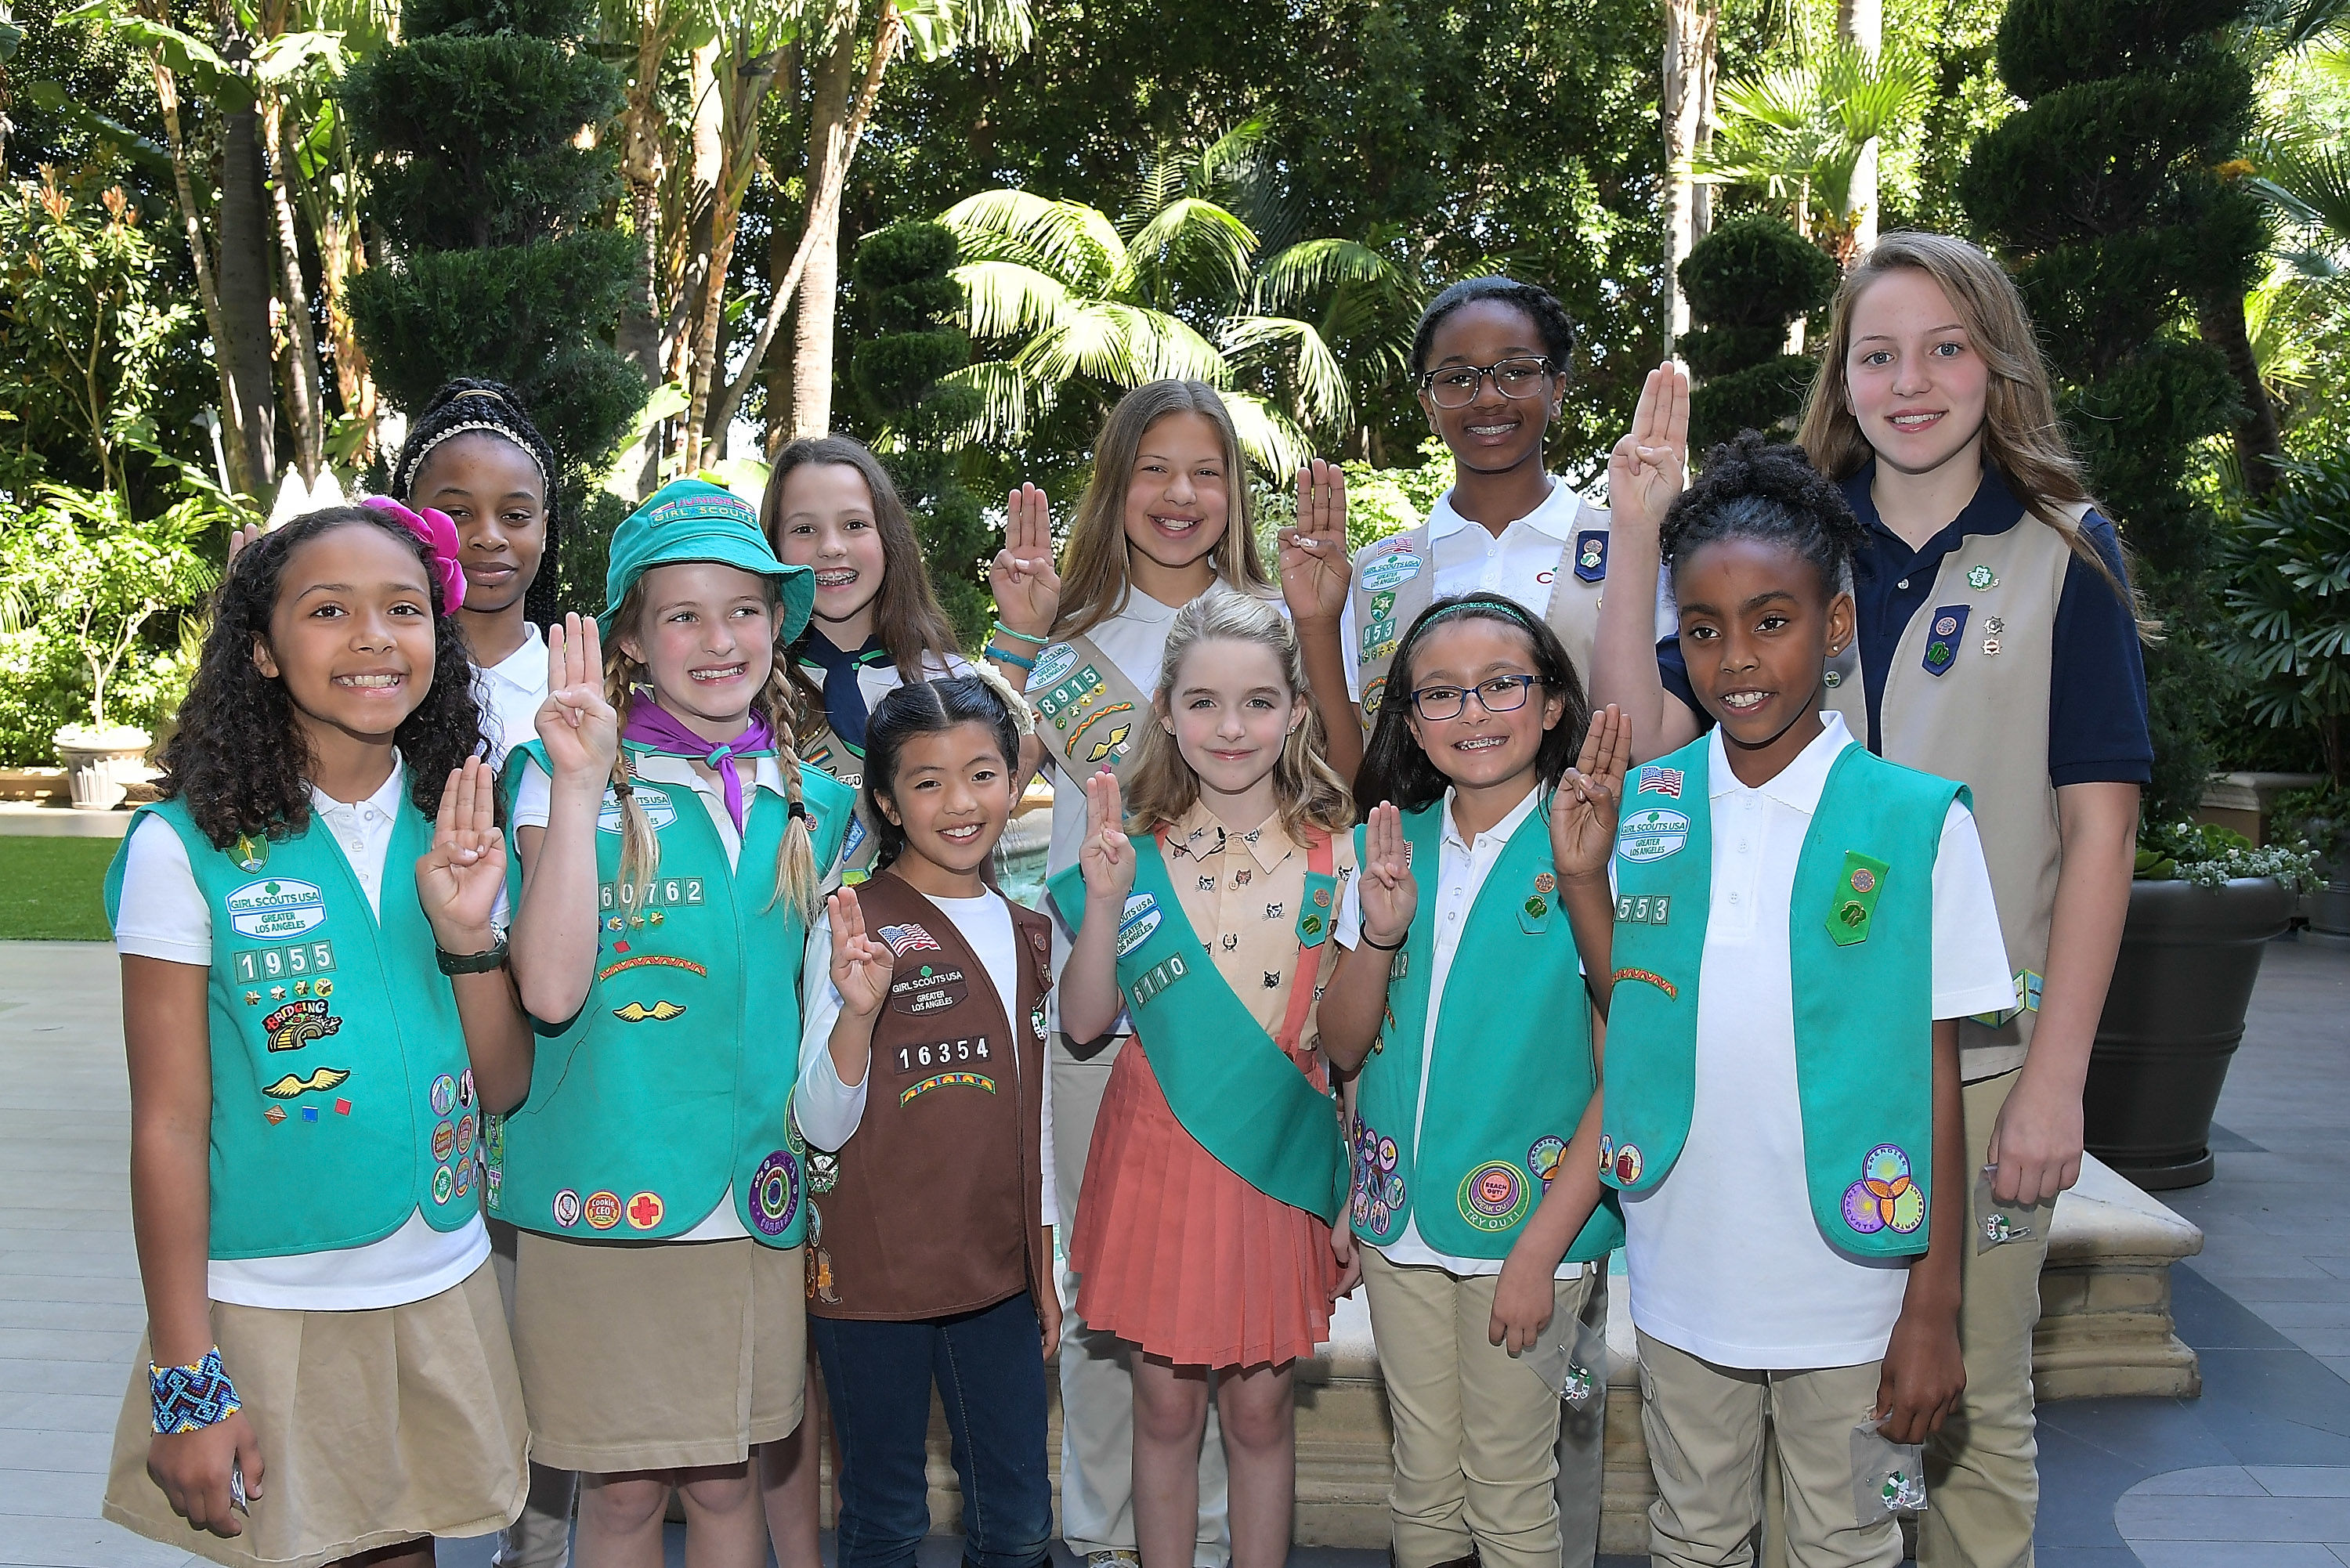 The Story of the First Girl Scout: Savannah's Juliette Gordon Low